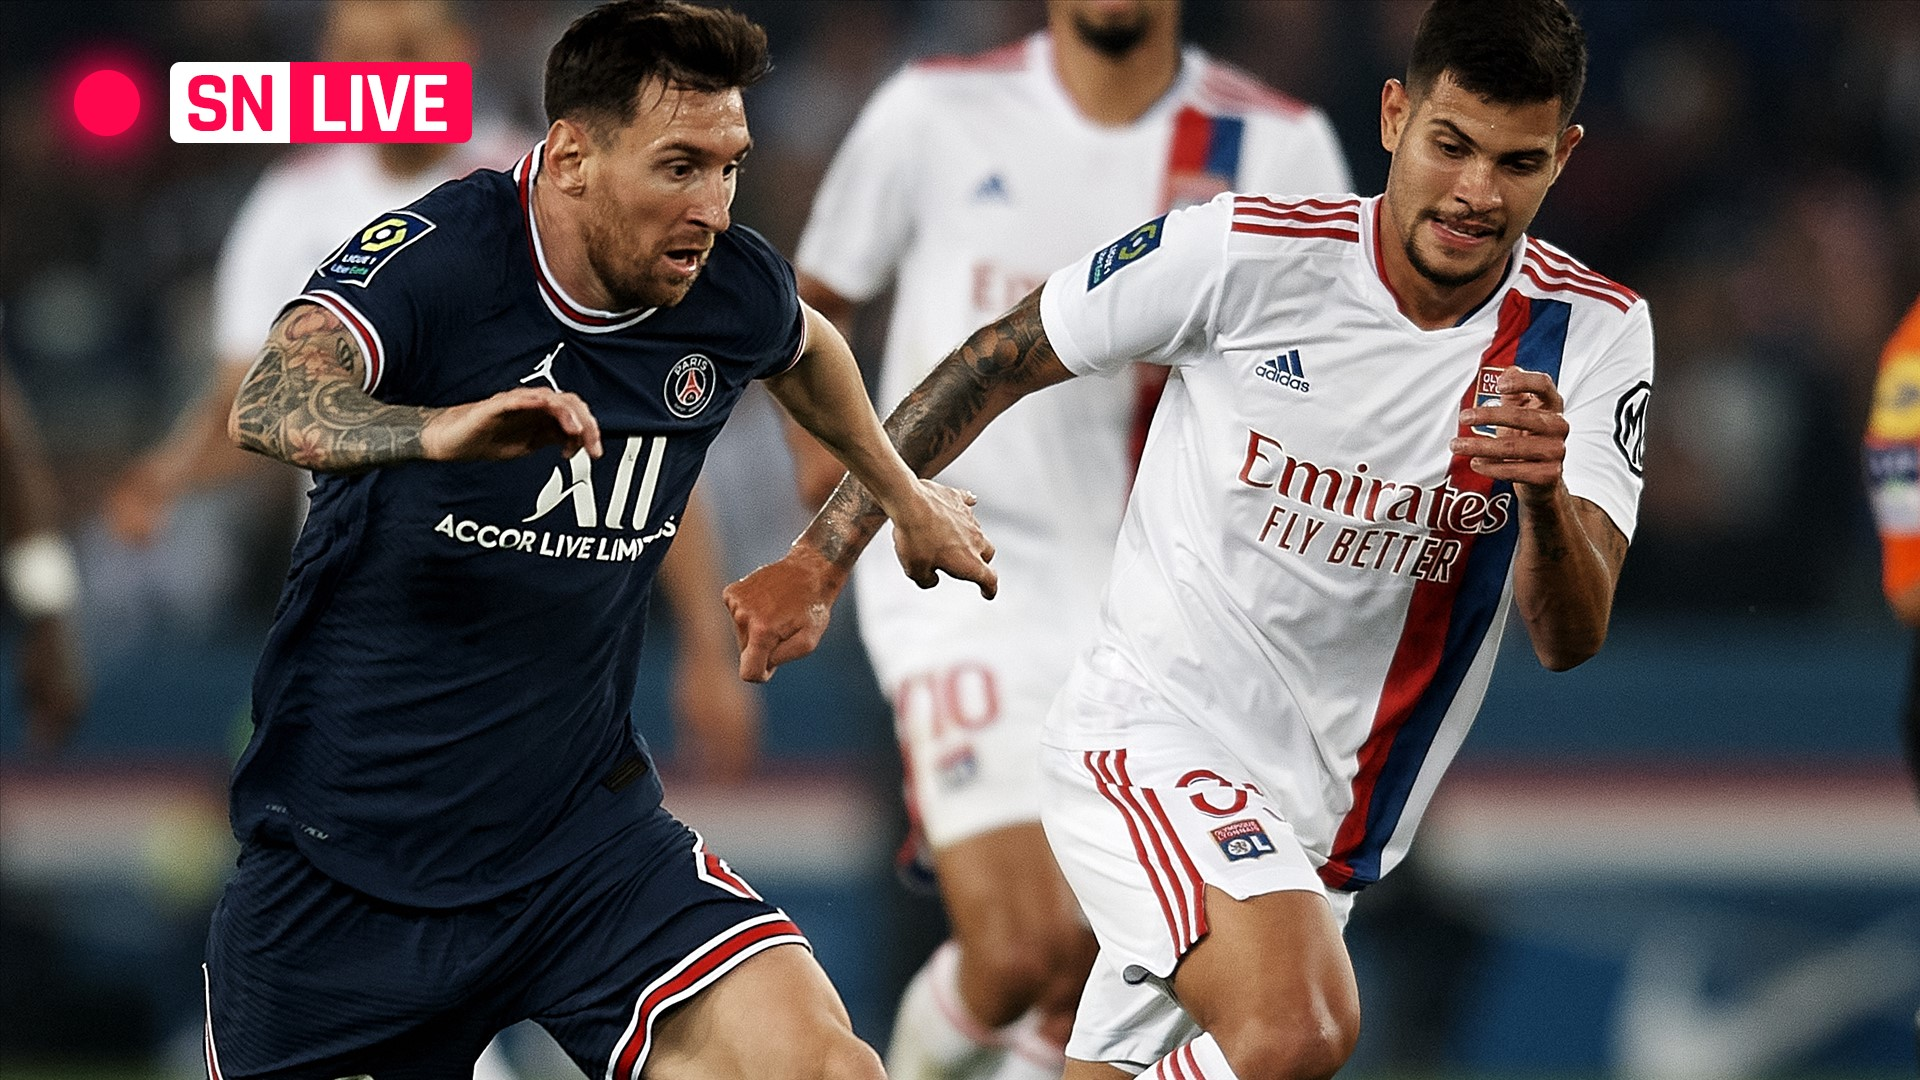 PSG vs. Lyon result: Messi controversially subbed off, but Icardi nets late winner